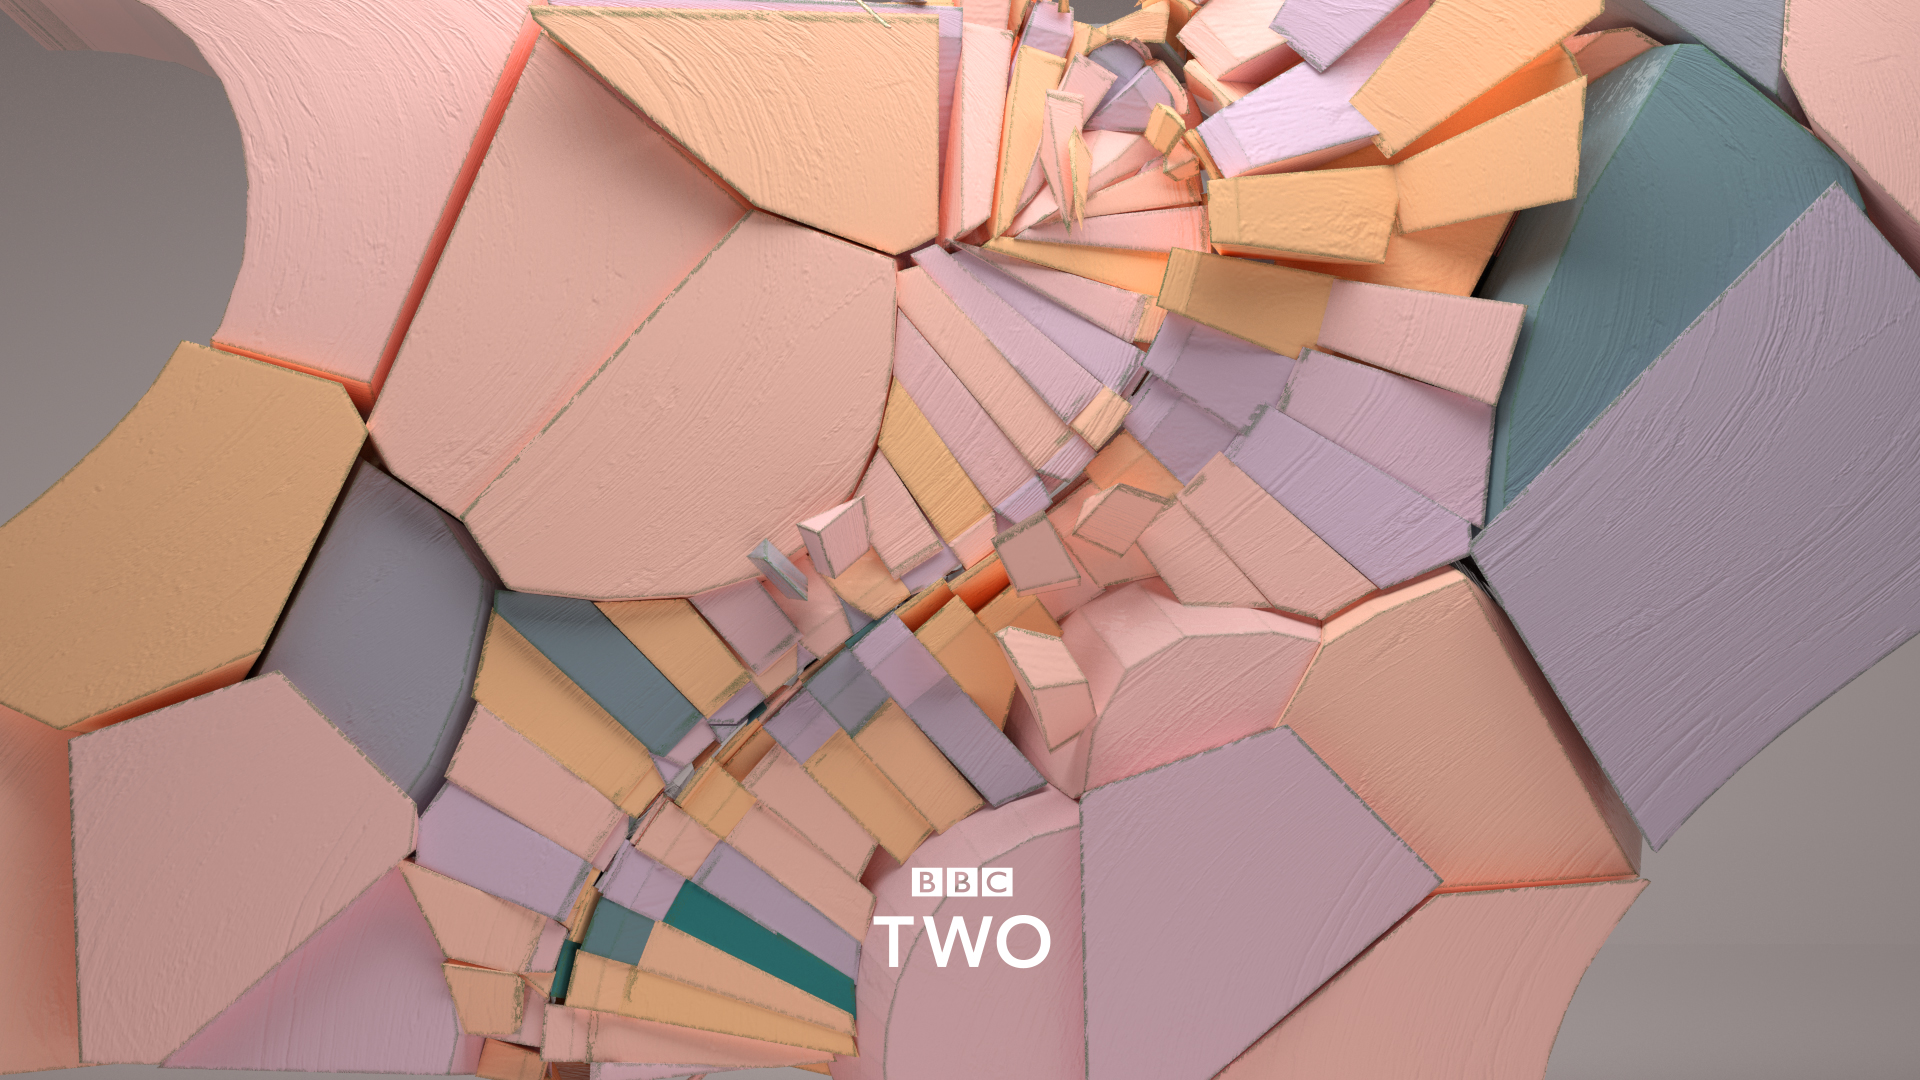 BBC_two_15